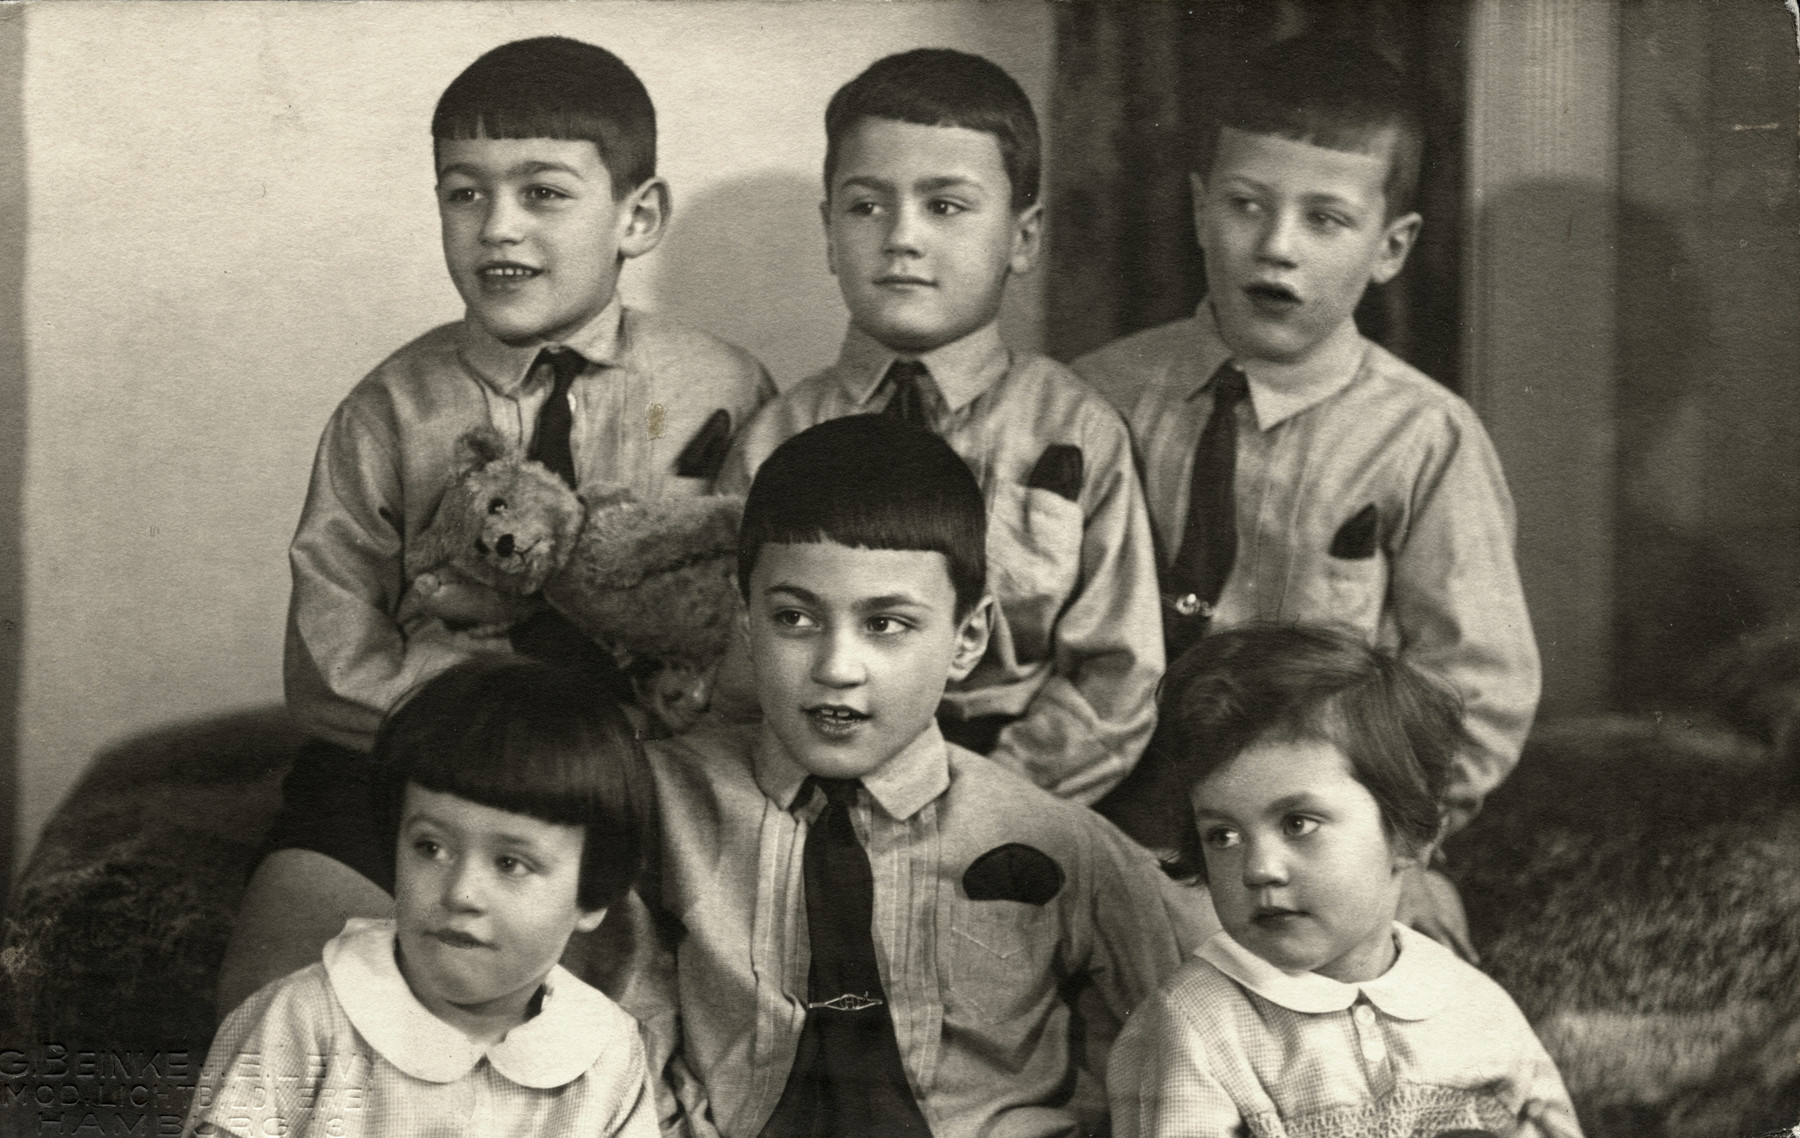 Portrait of the six oldest Emanuel sibilings, Elchanan, Shlomo, Yona, Shmuel, Baruch and Bella.